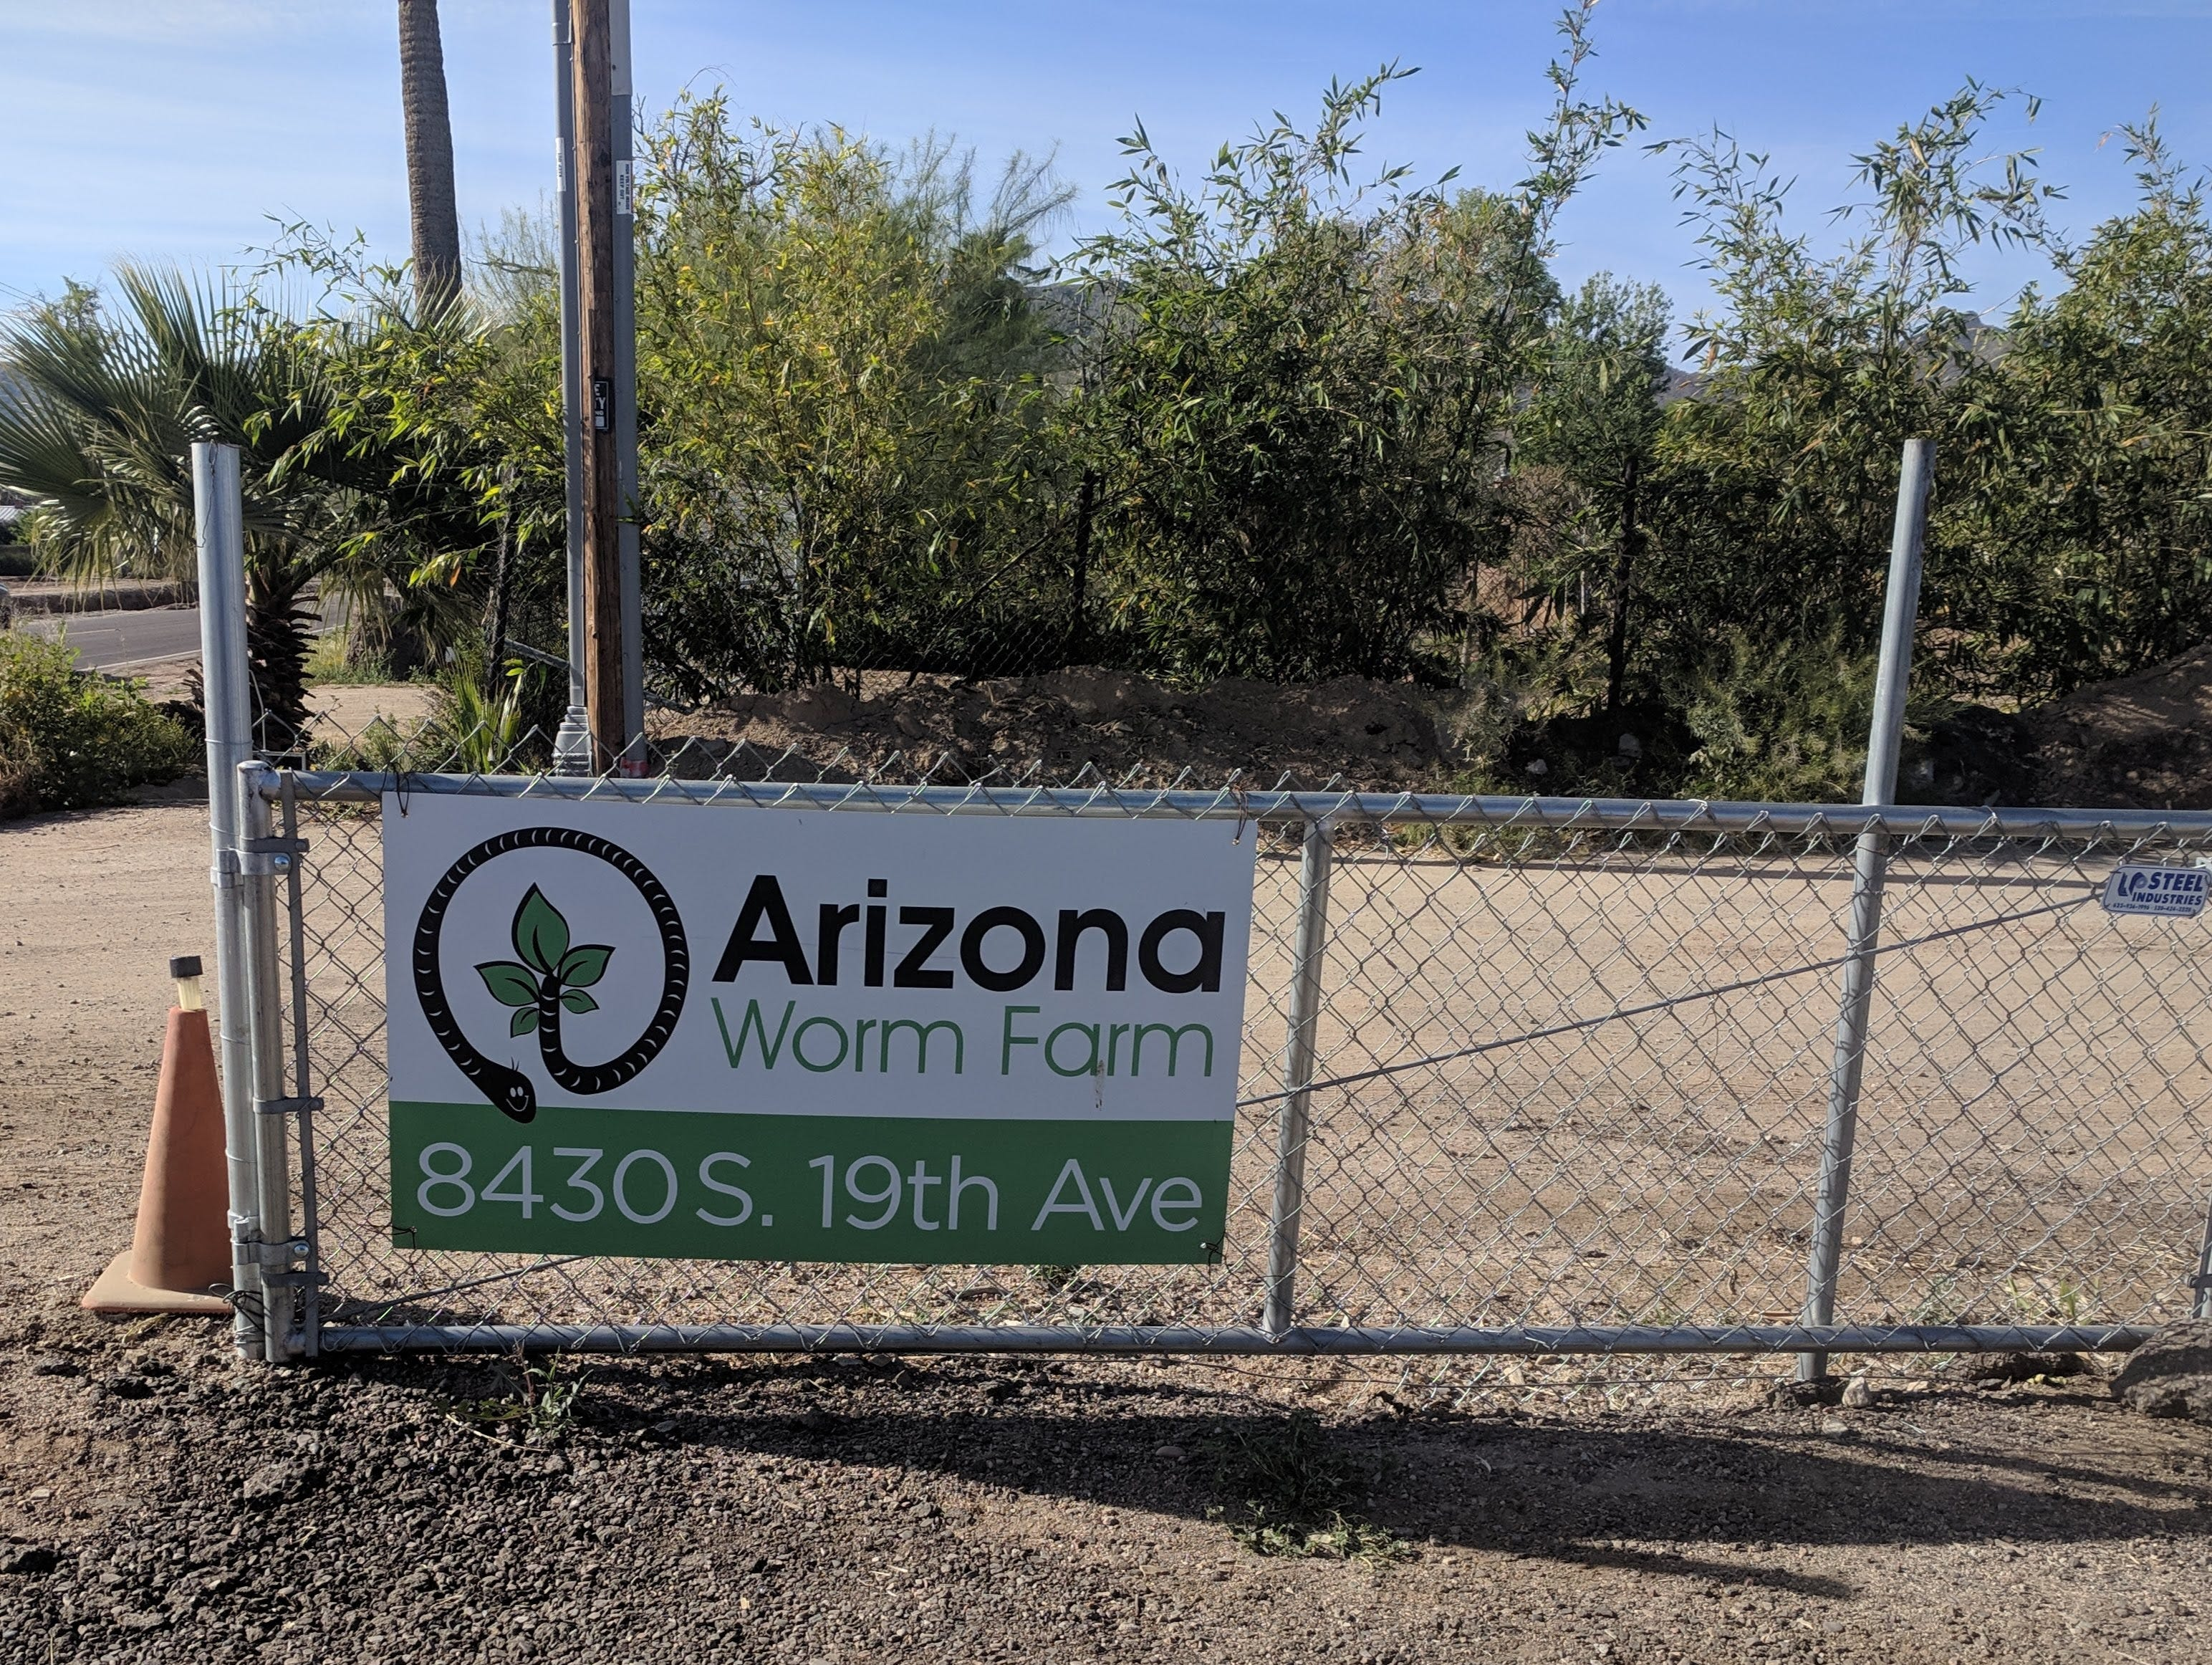 The Brooks spend their weekends in a farmhouse they built near South Mountain where their Arizona Worm Farm is located.